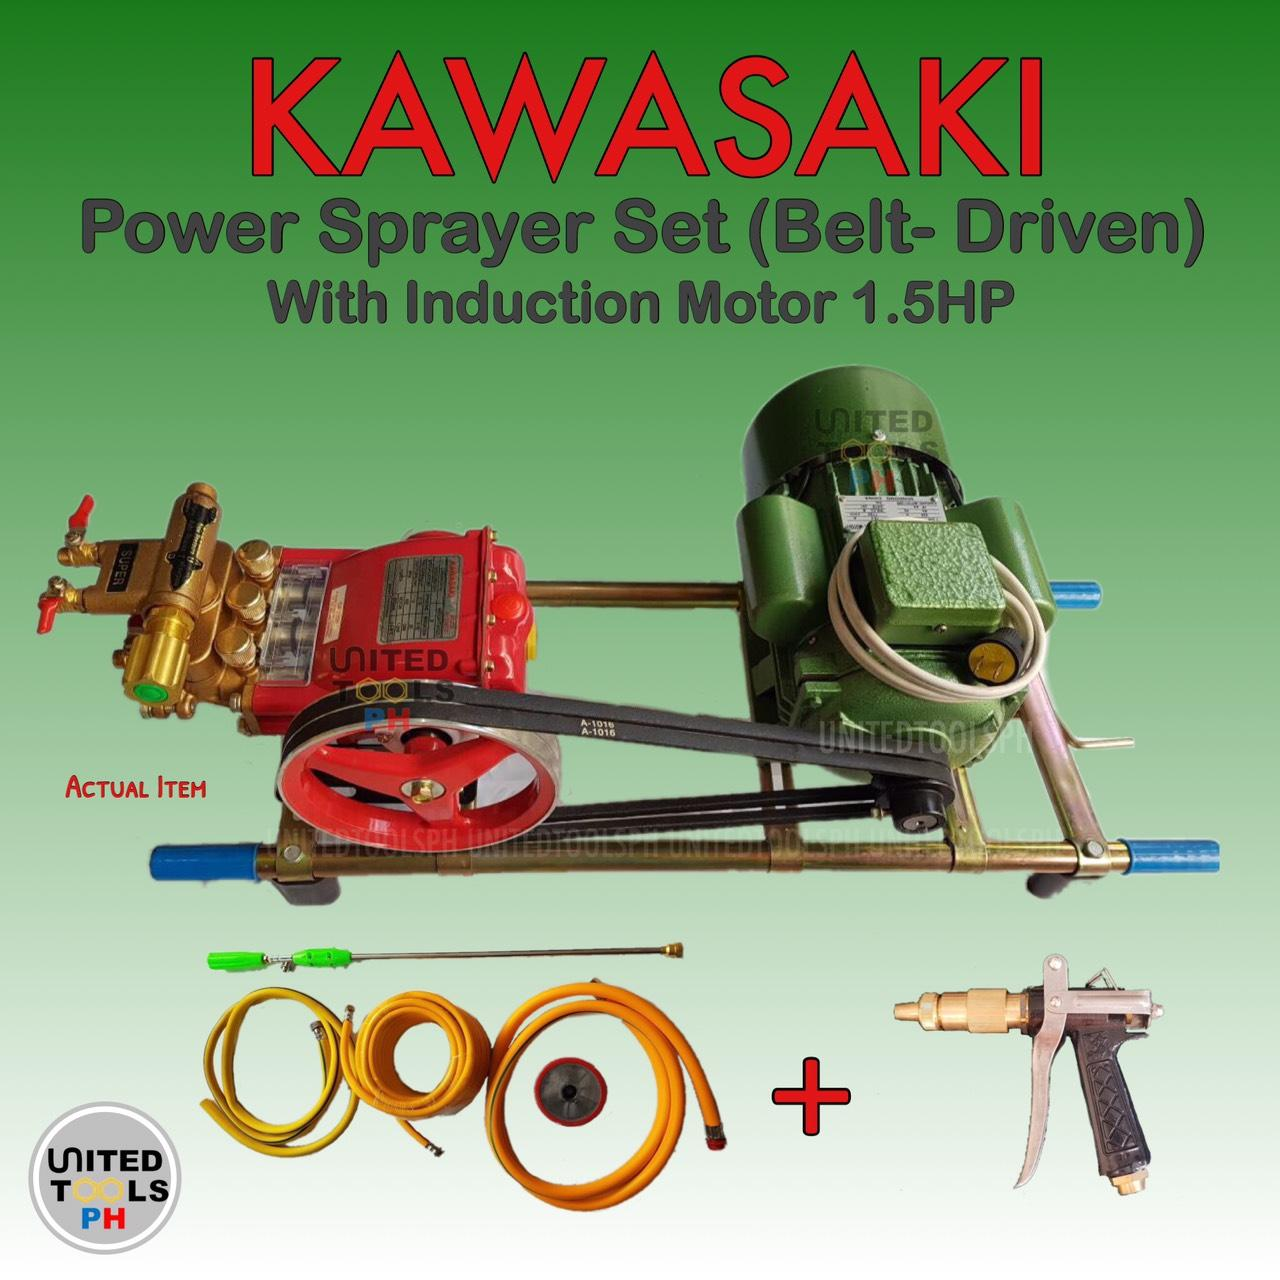 KAWASAKI Power Sprayer w/ Induction Motor 1.5HP (Belt-driven) Philippines